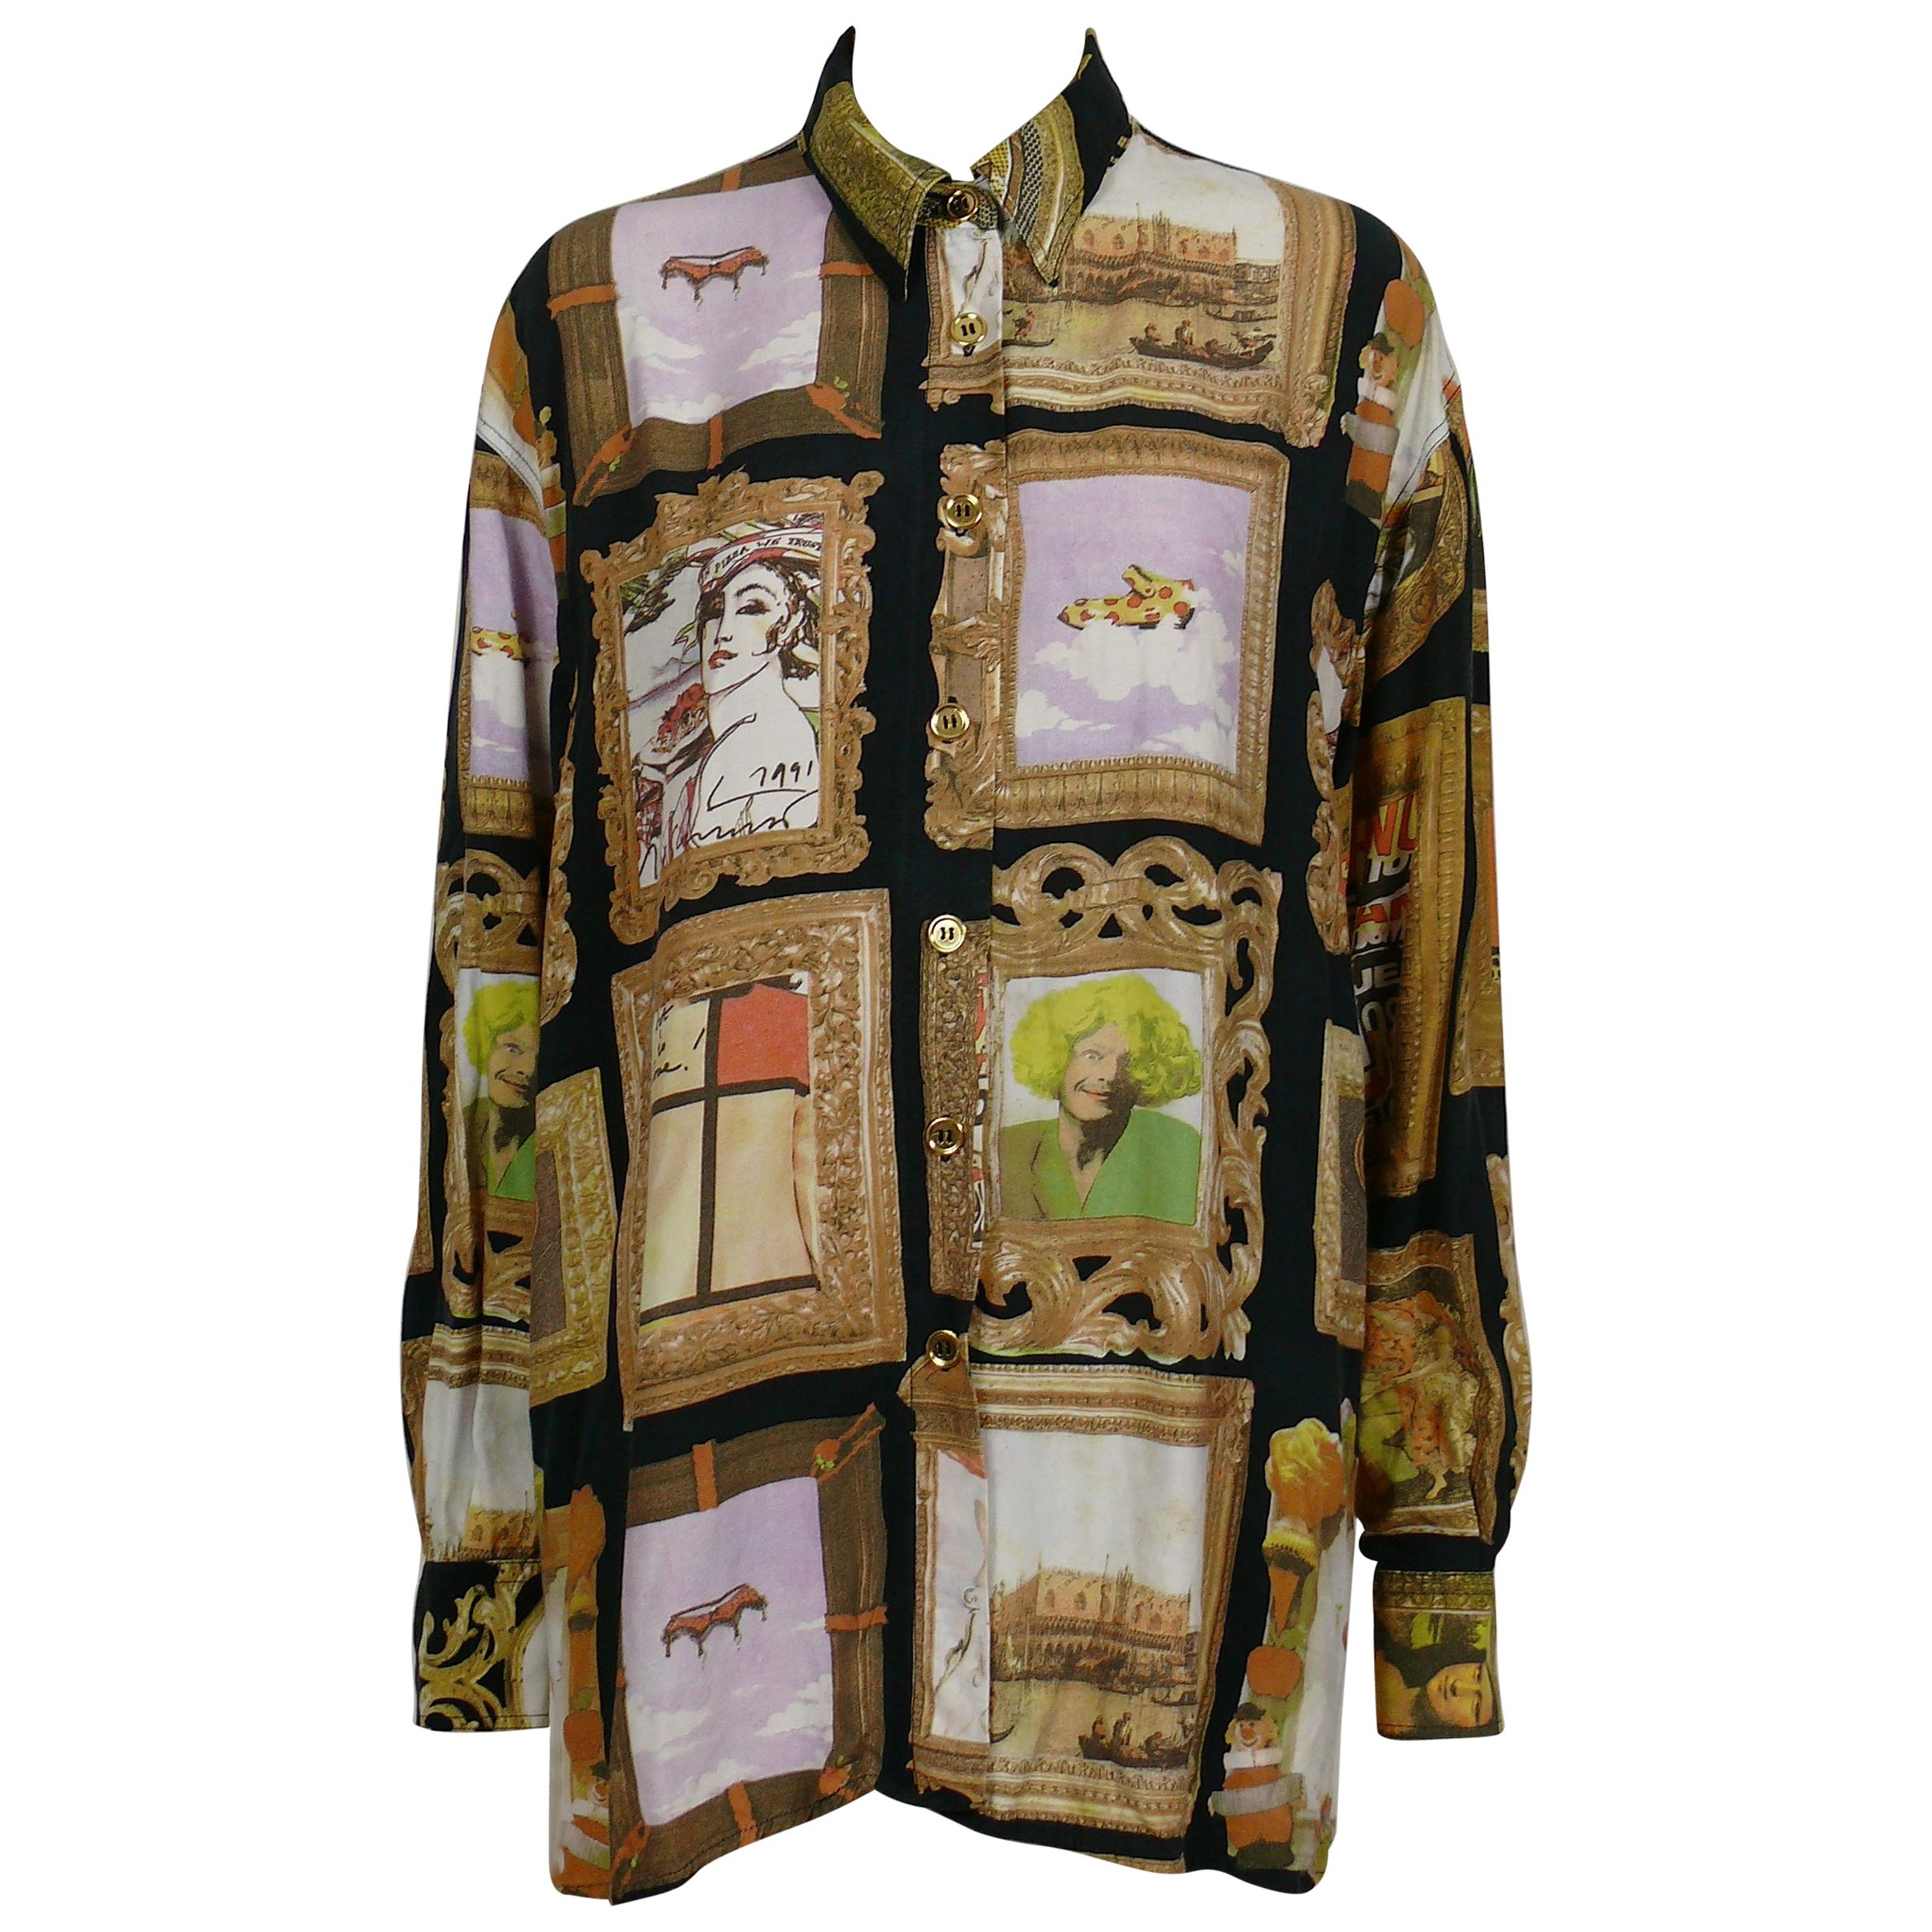 Moschino Vintage Iconic 90s Frame Art Gallery Shirt Size L